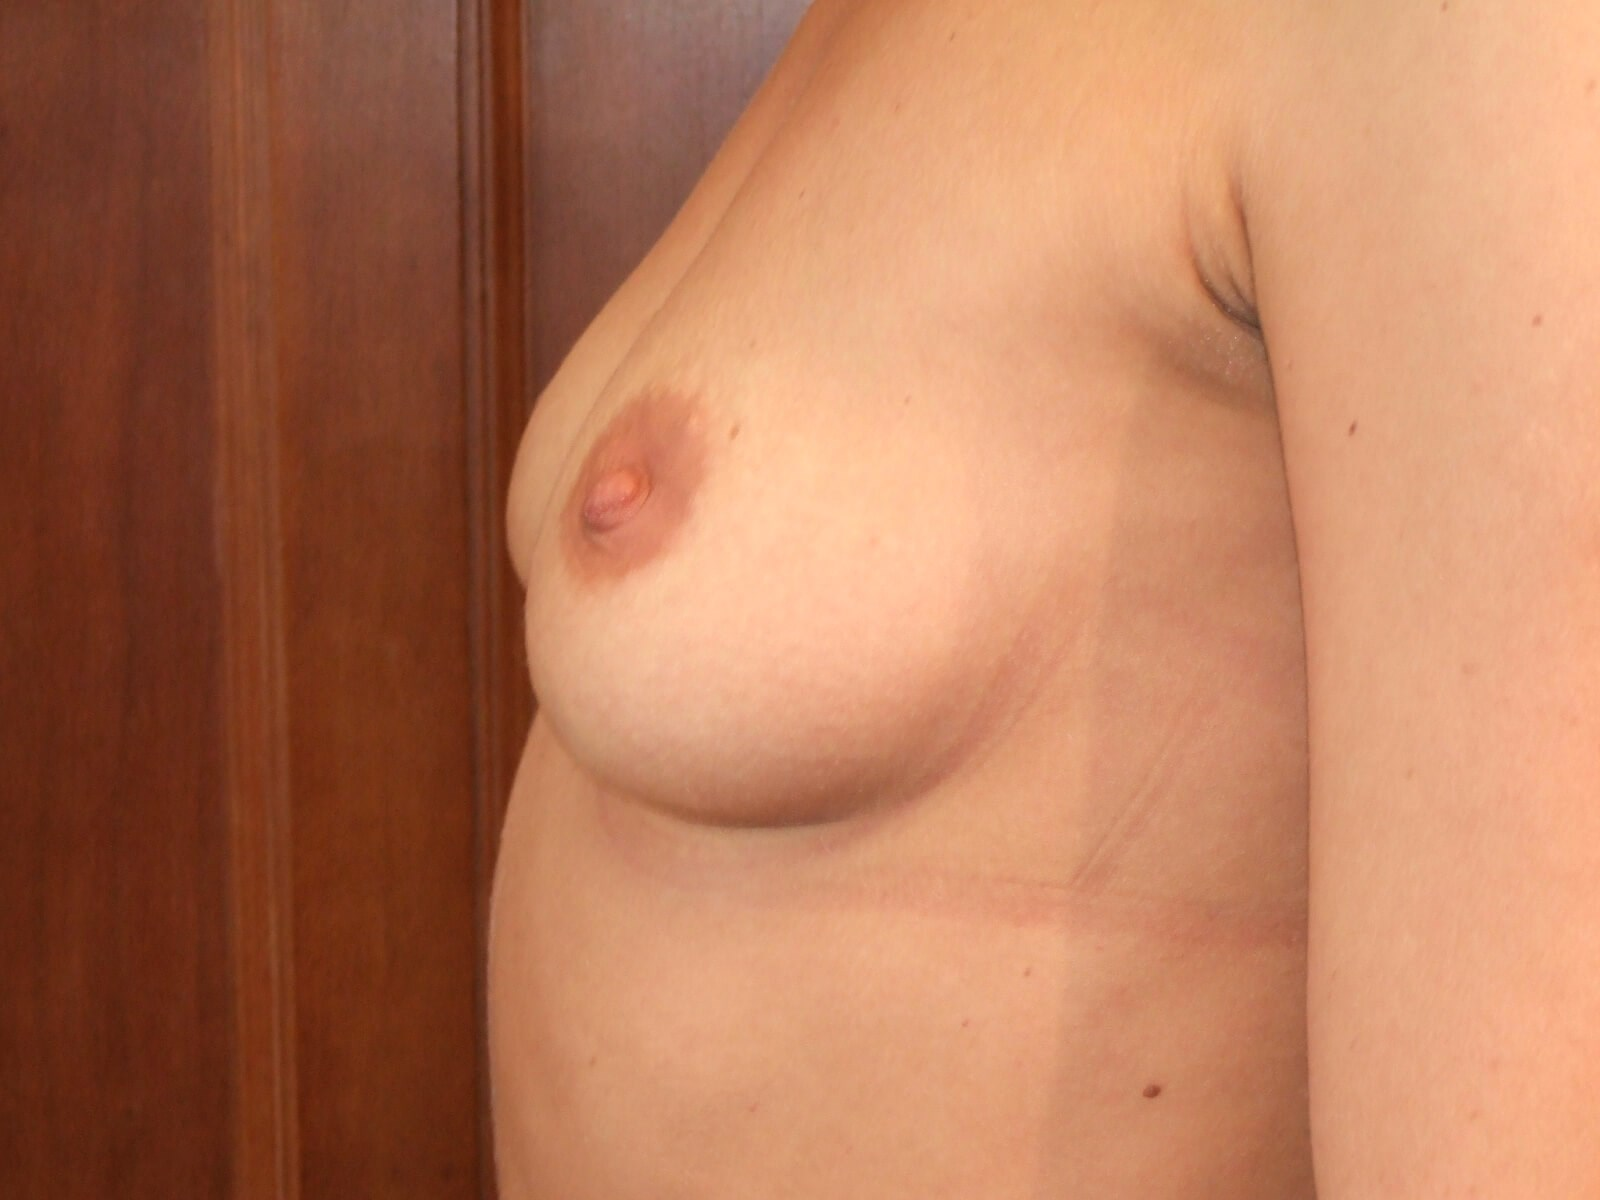 Left Side Before Breast Implants